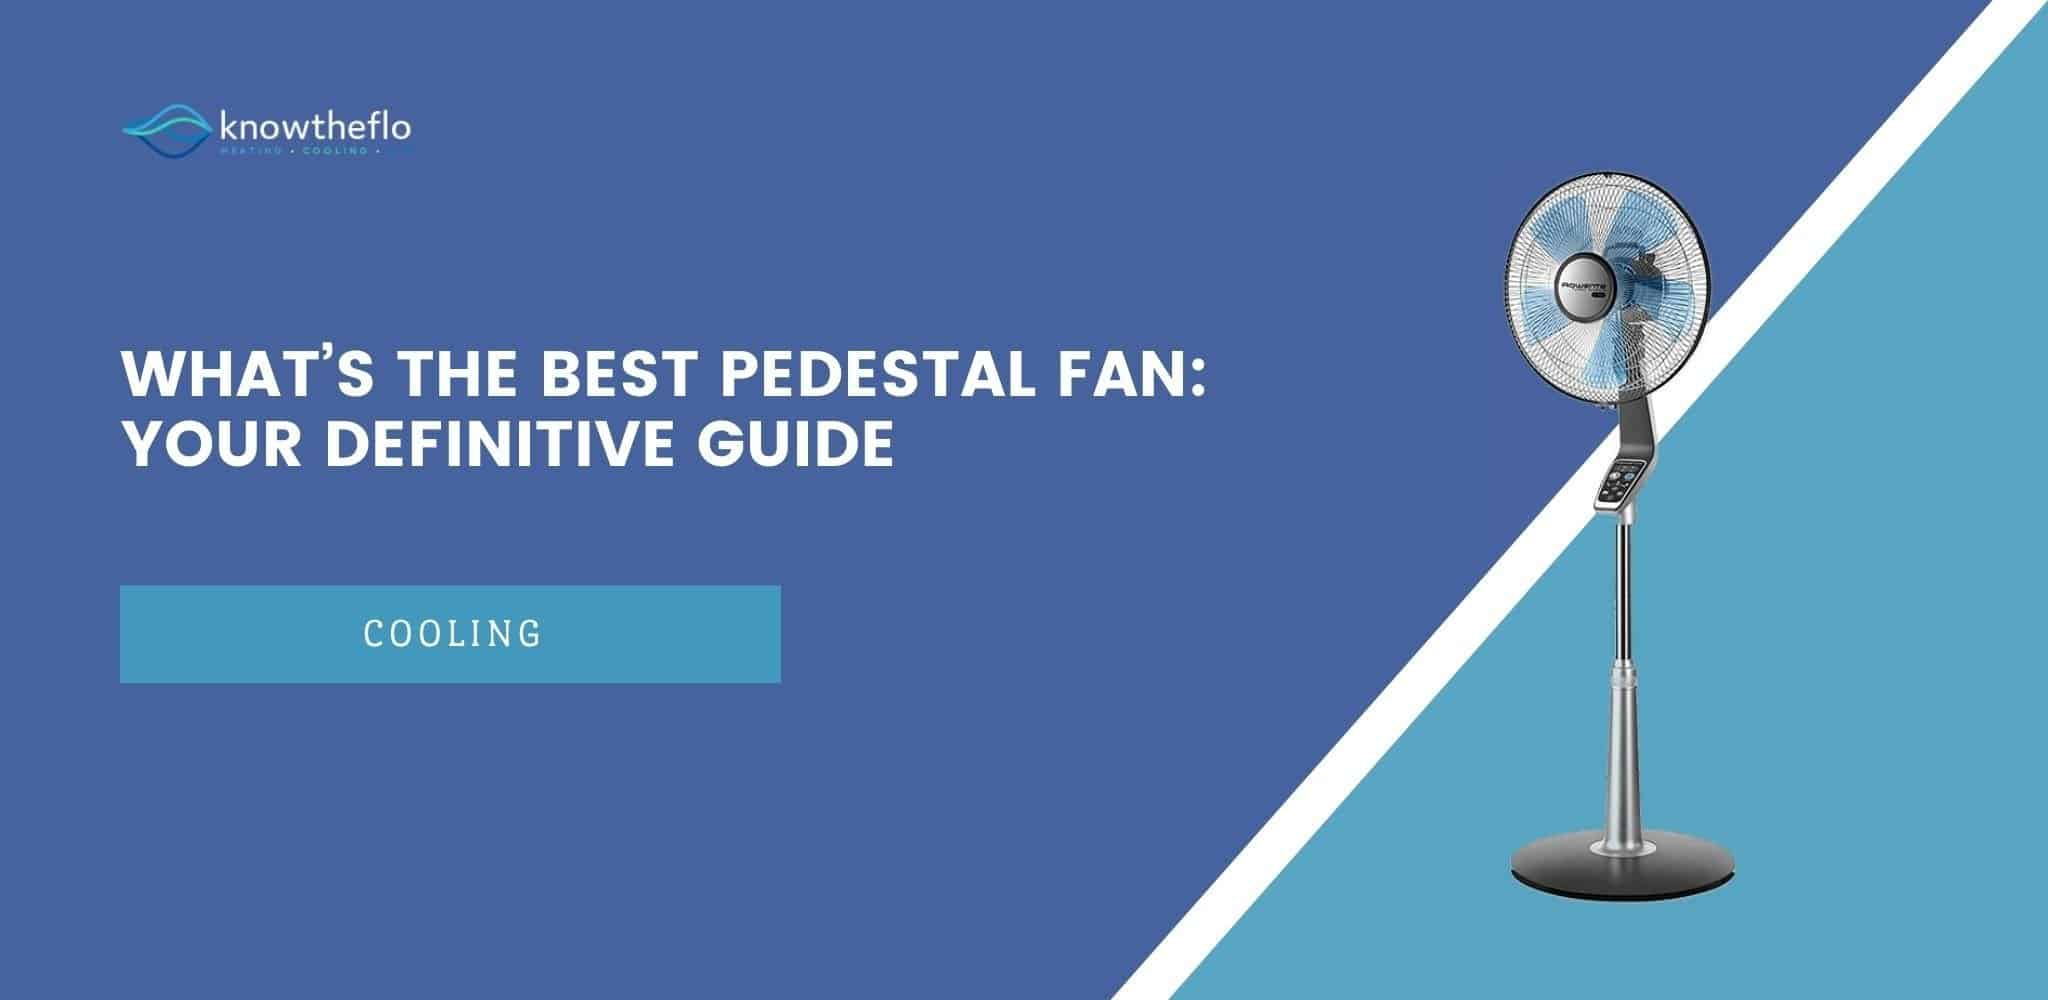 What's the Best Pedestal Fan - Your Definitive Guide